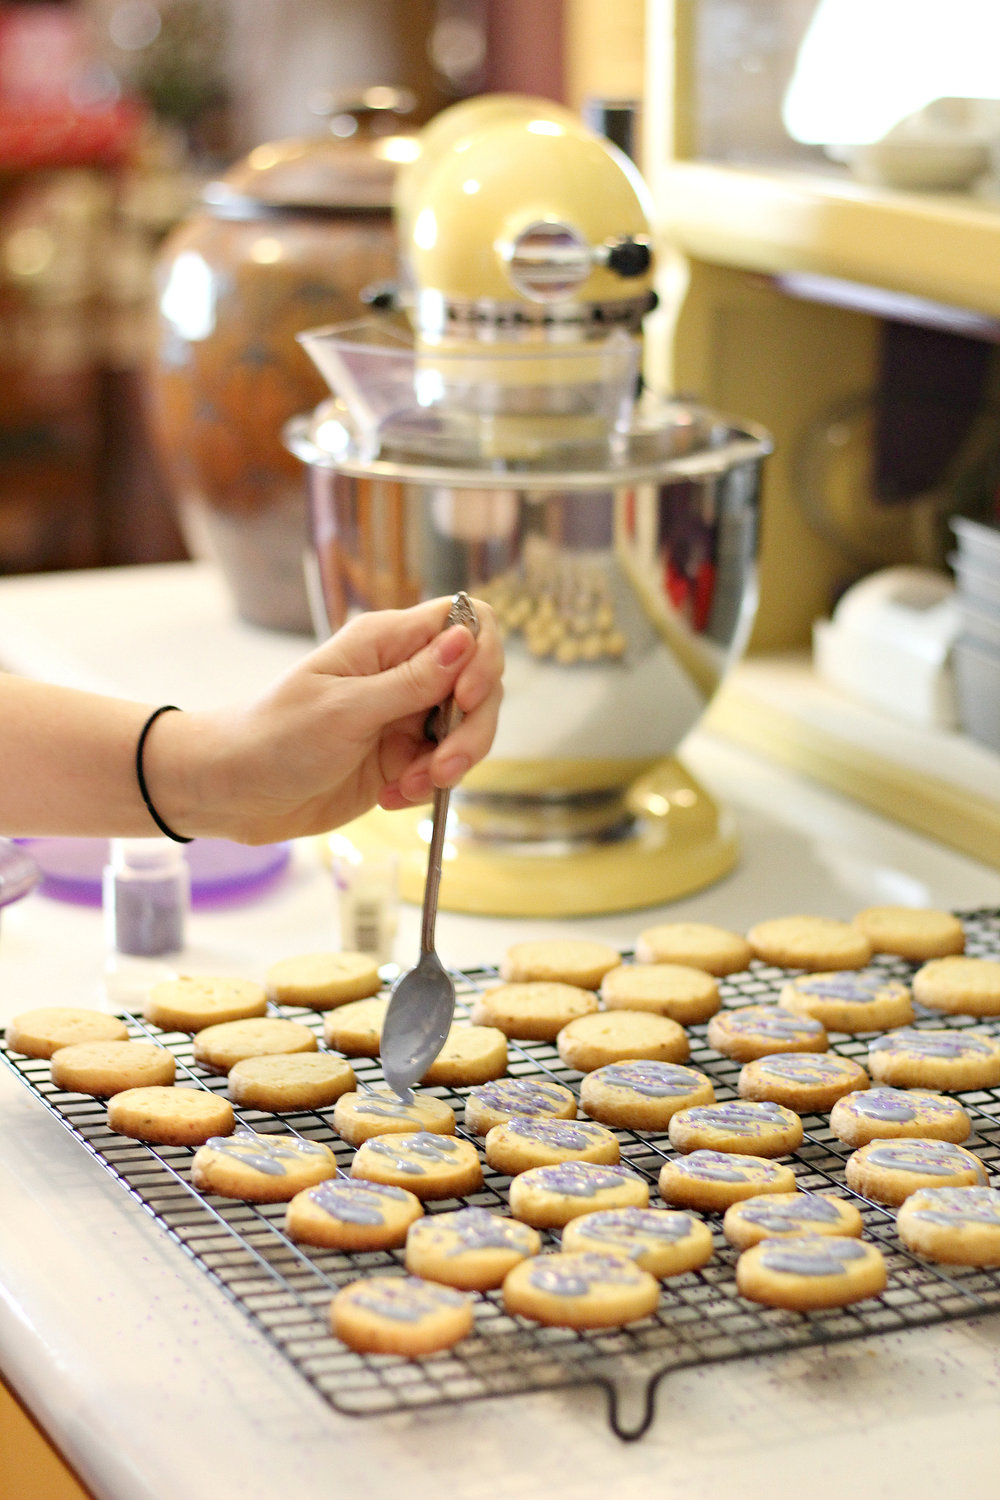 Icing the cooked and cooled shortbread cookies.